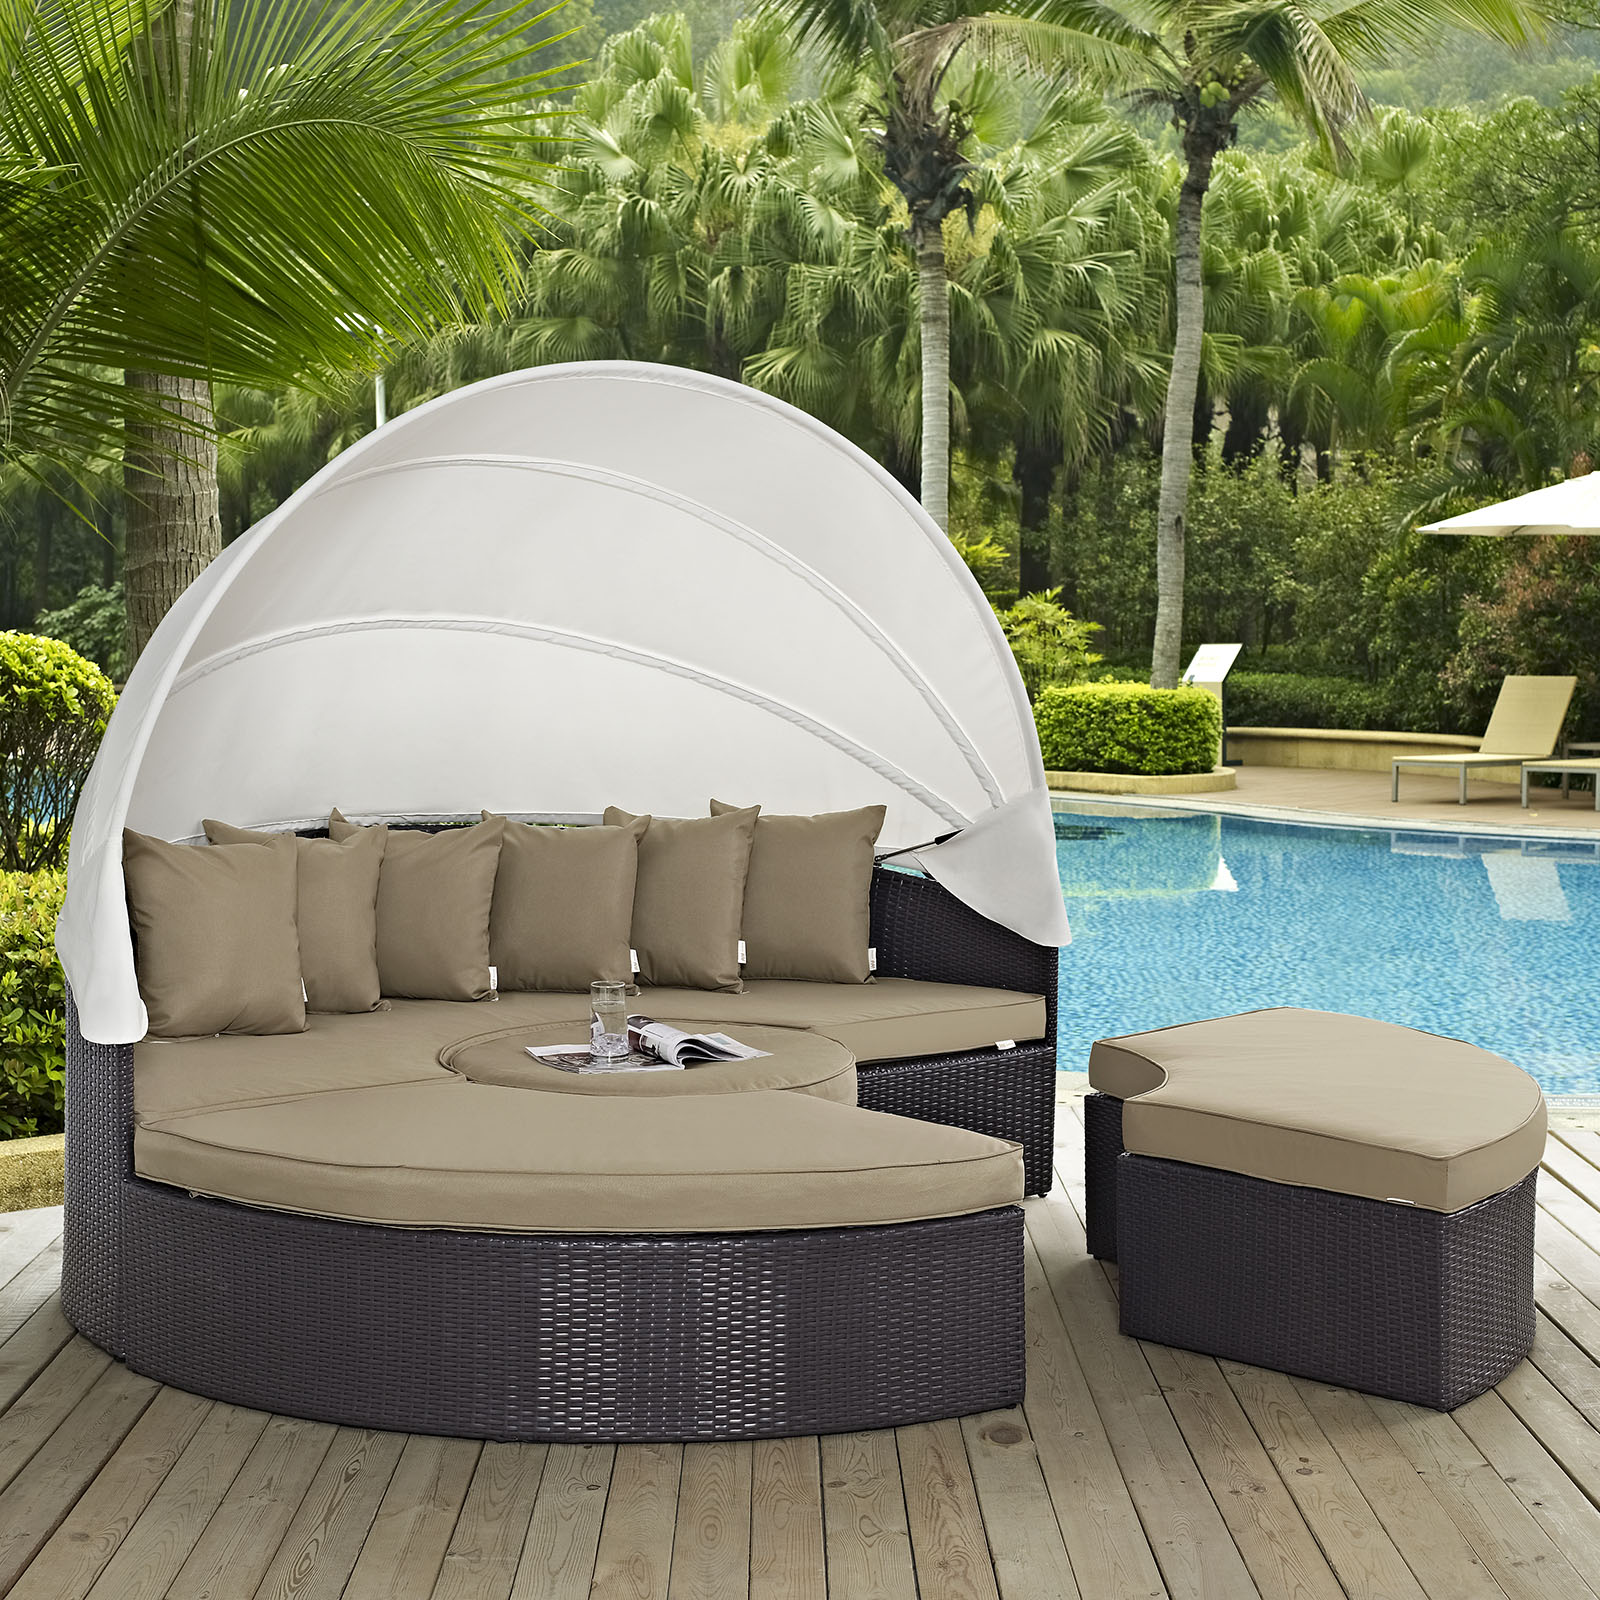 modway convene 5 piece canopy outdoor patio daybed, multiple colors CHRDOGK